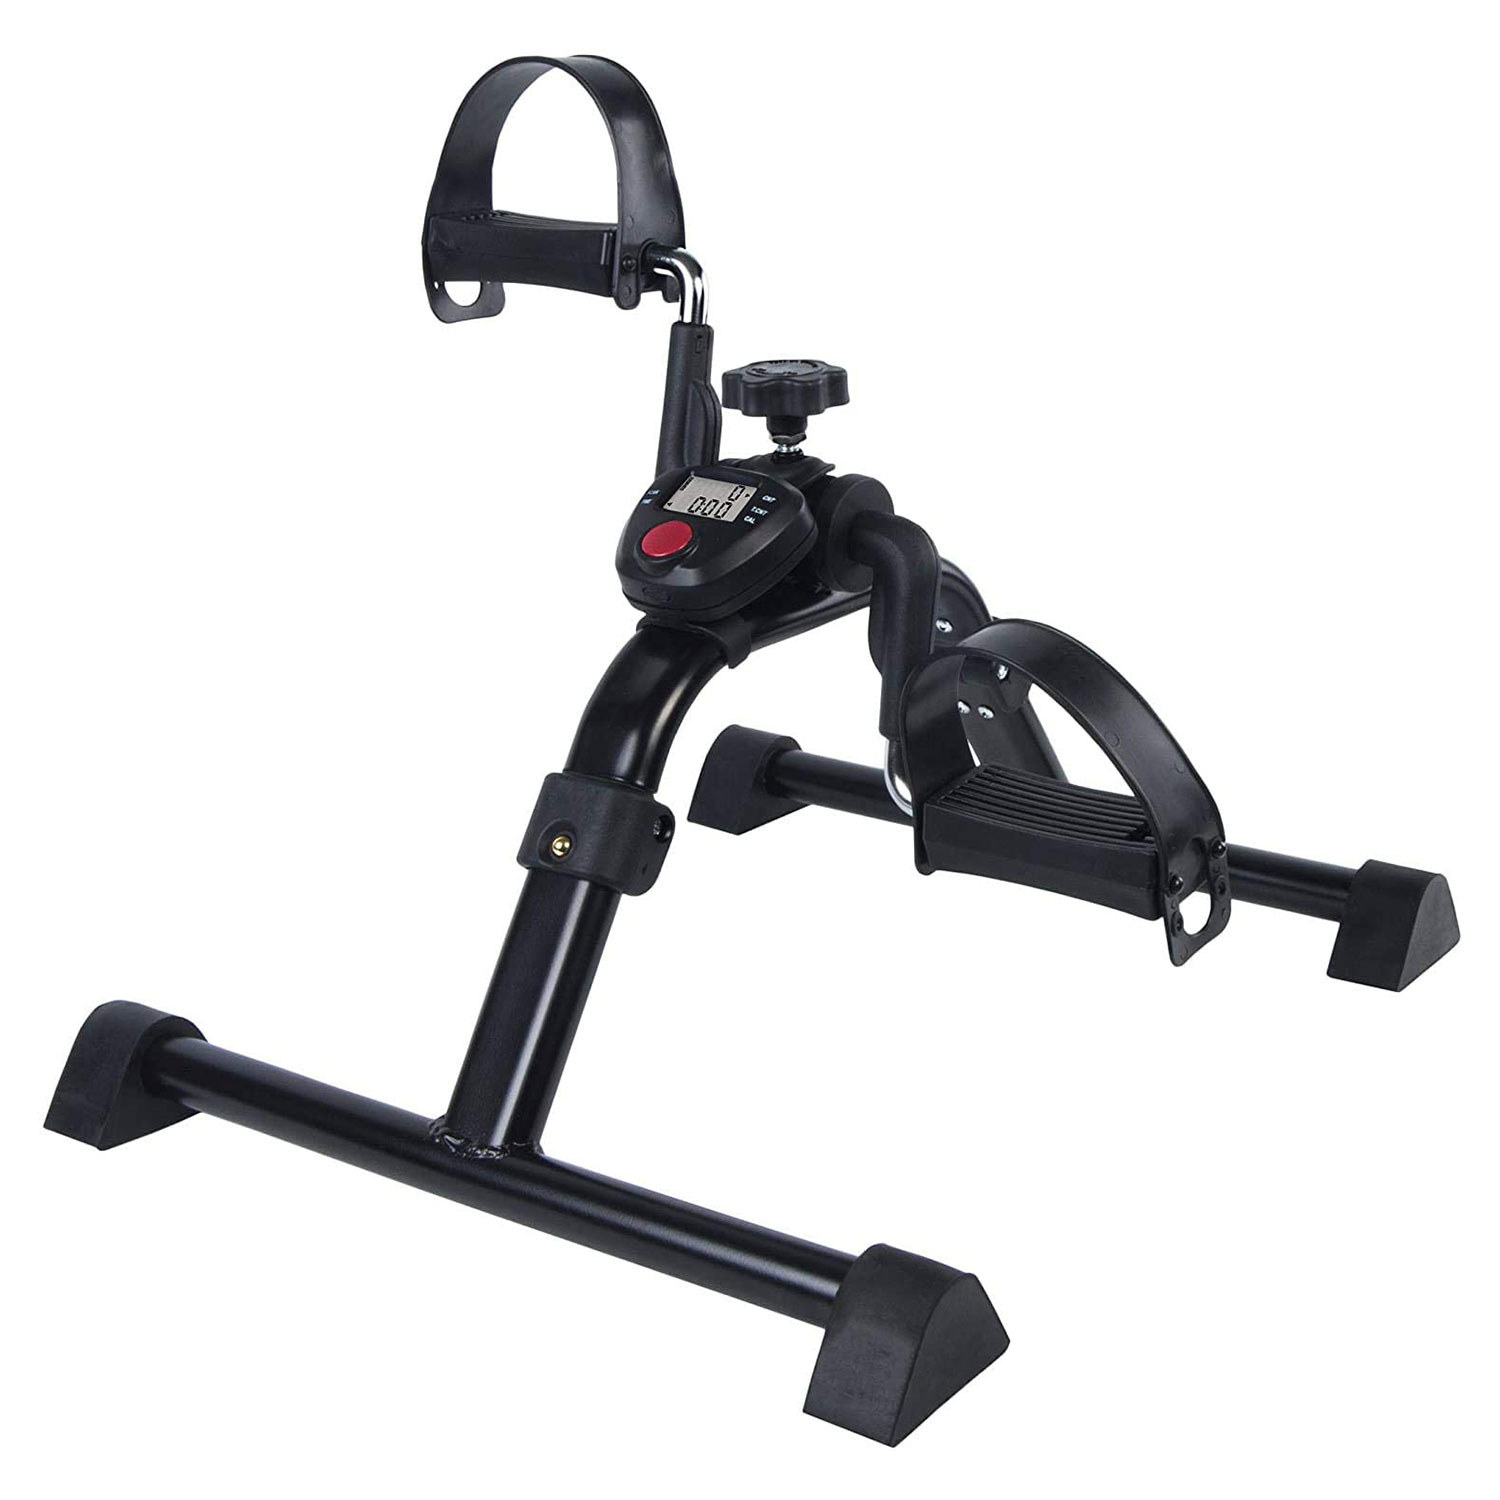 Vaunn Medical Folding Pedal Exerciser with Electronic Display for Legs and Arms Workout